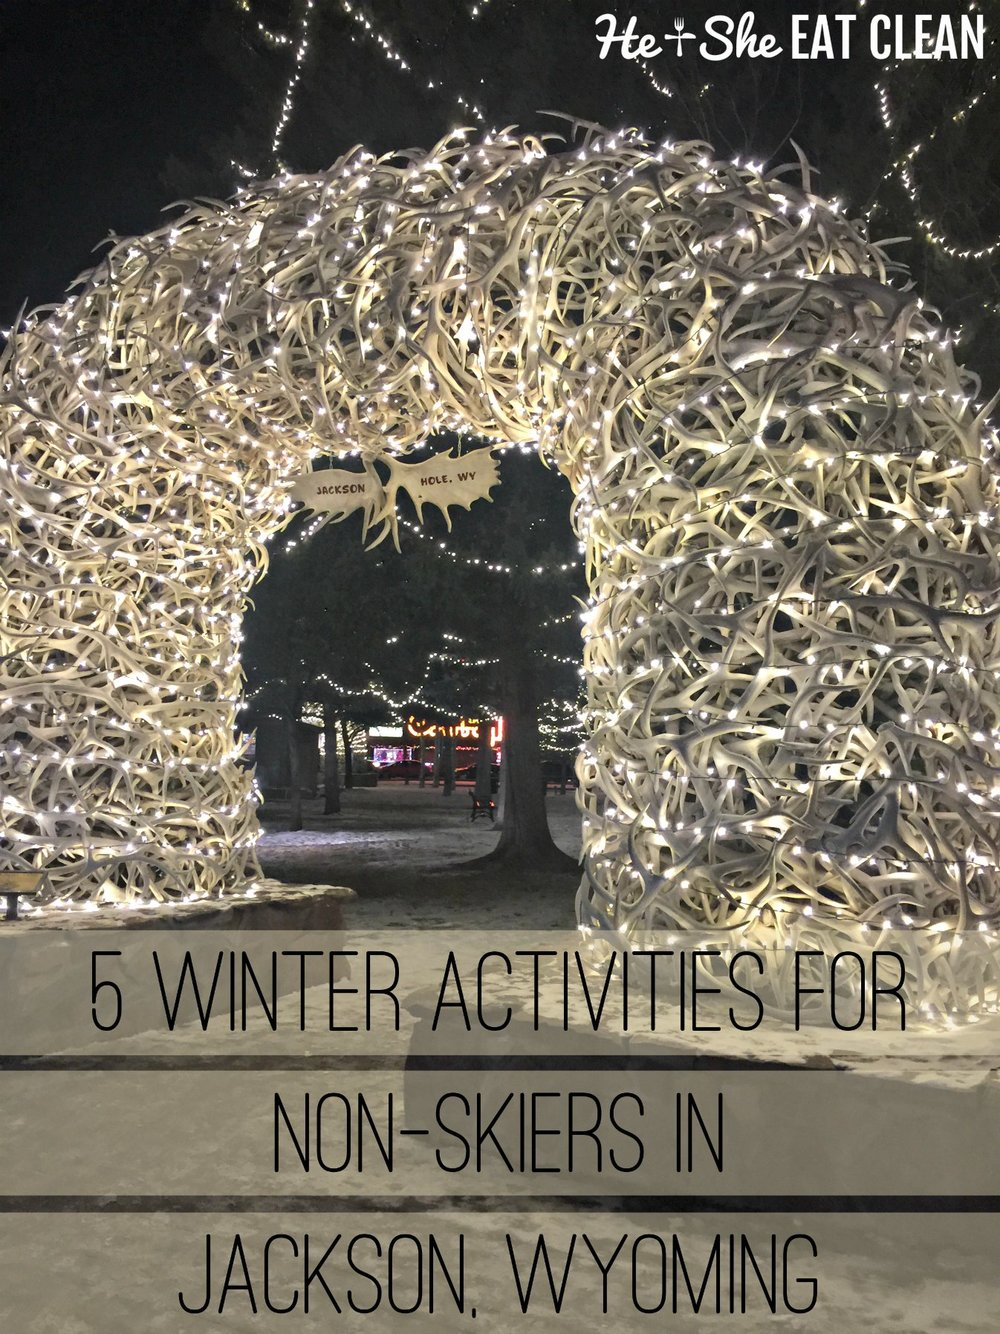 5 Winter Activities for Non-Skiers in Jackson, Wyoming